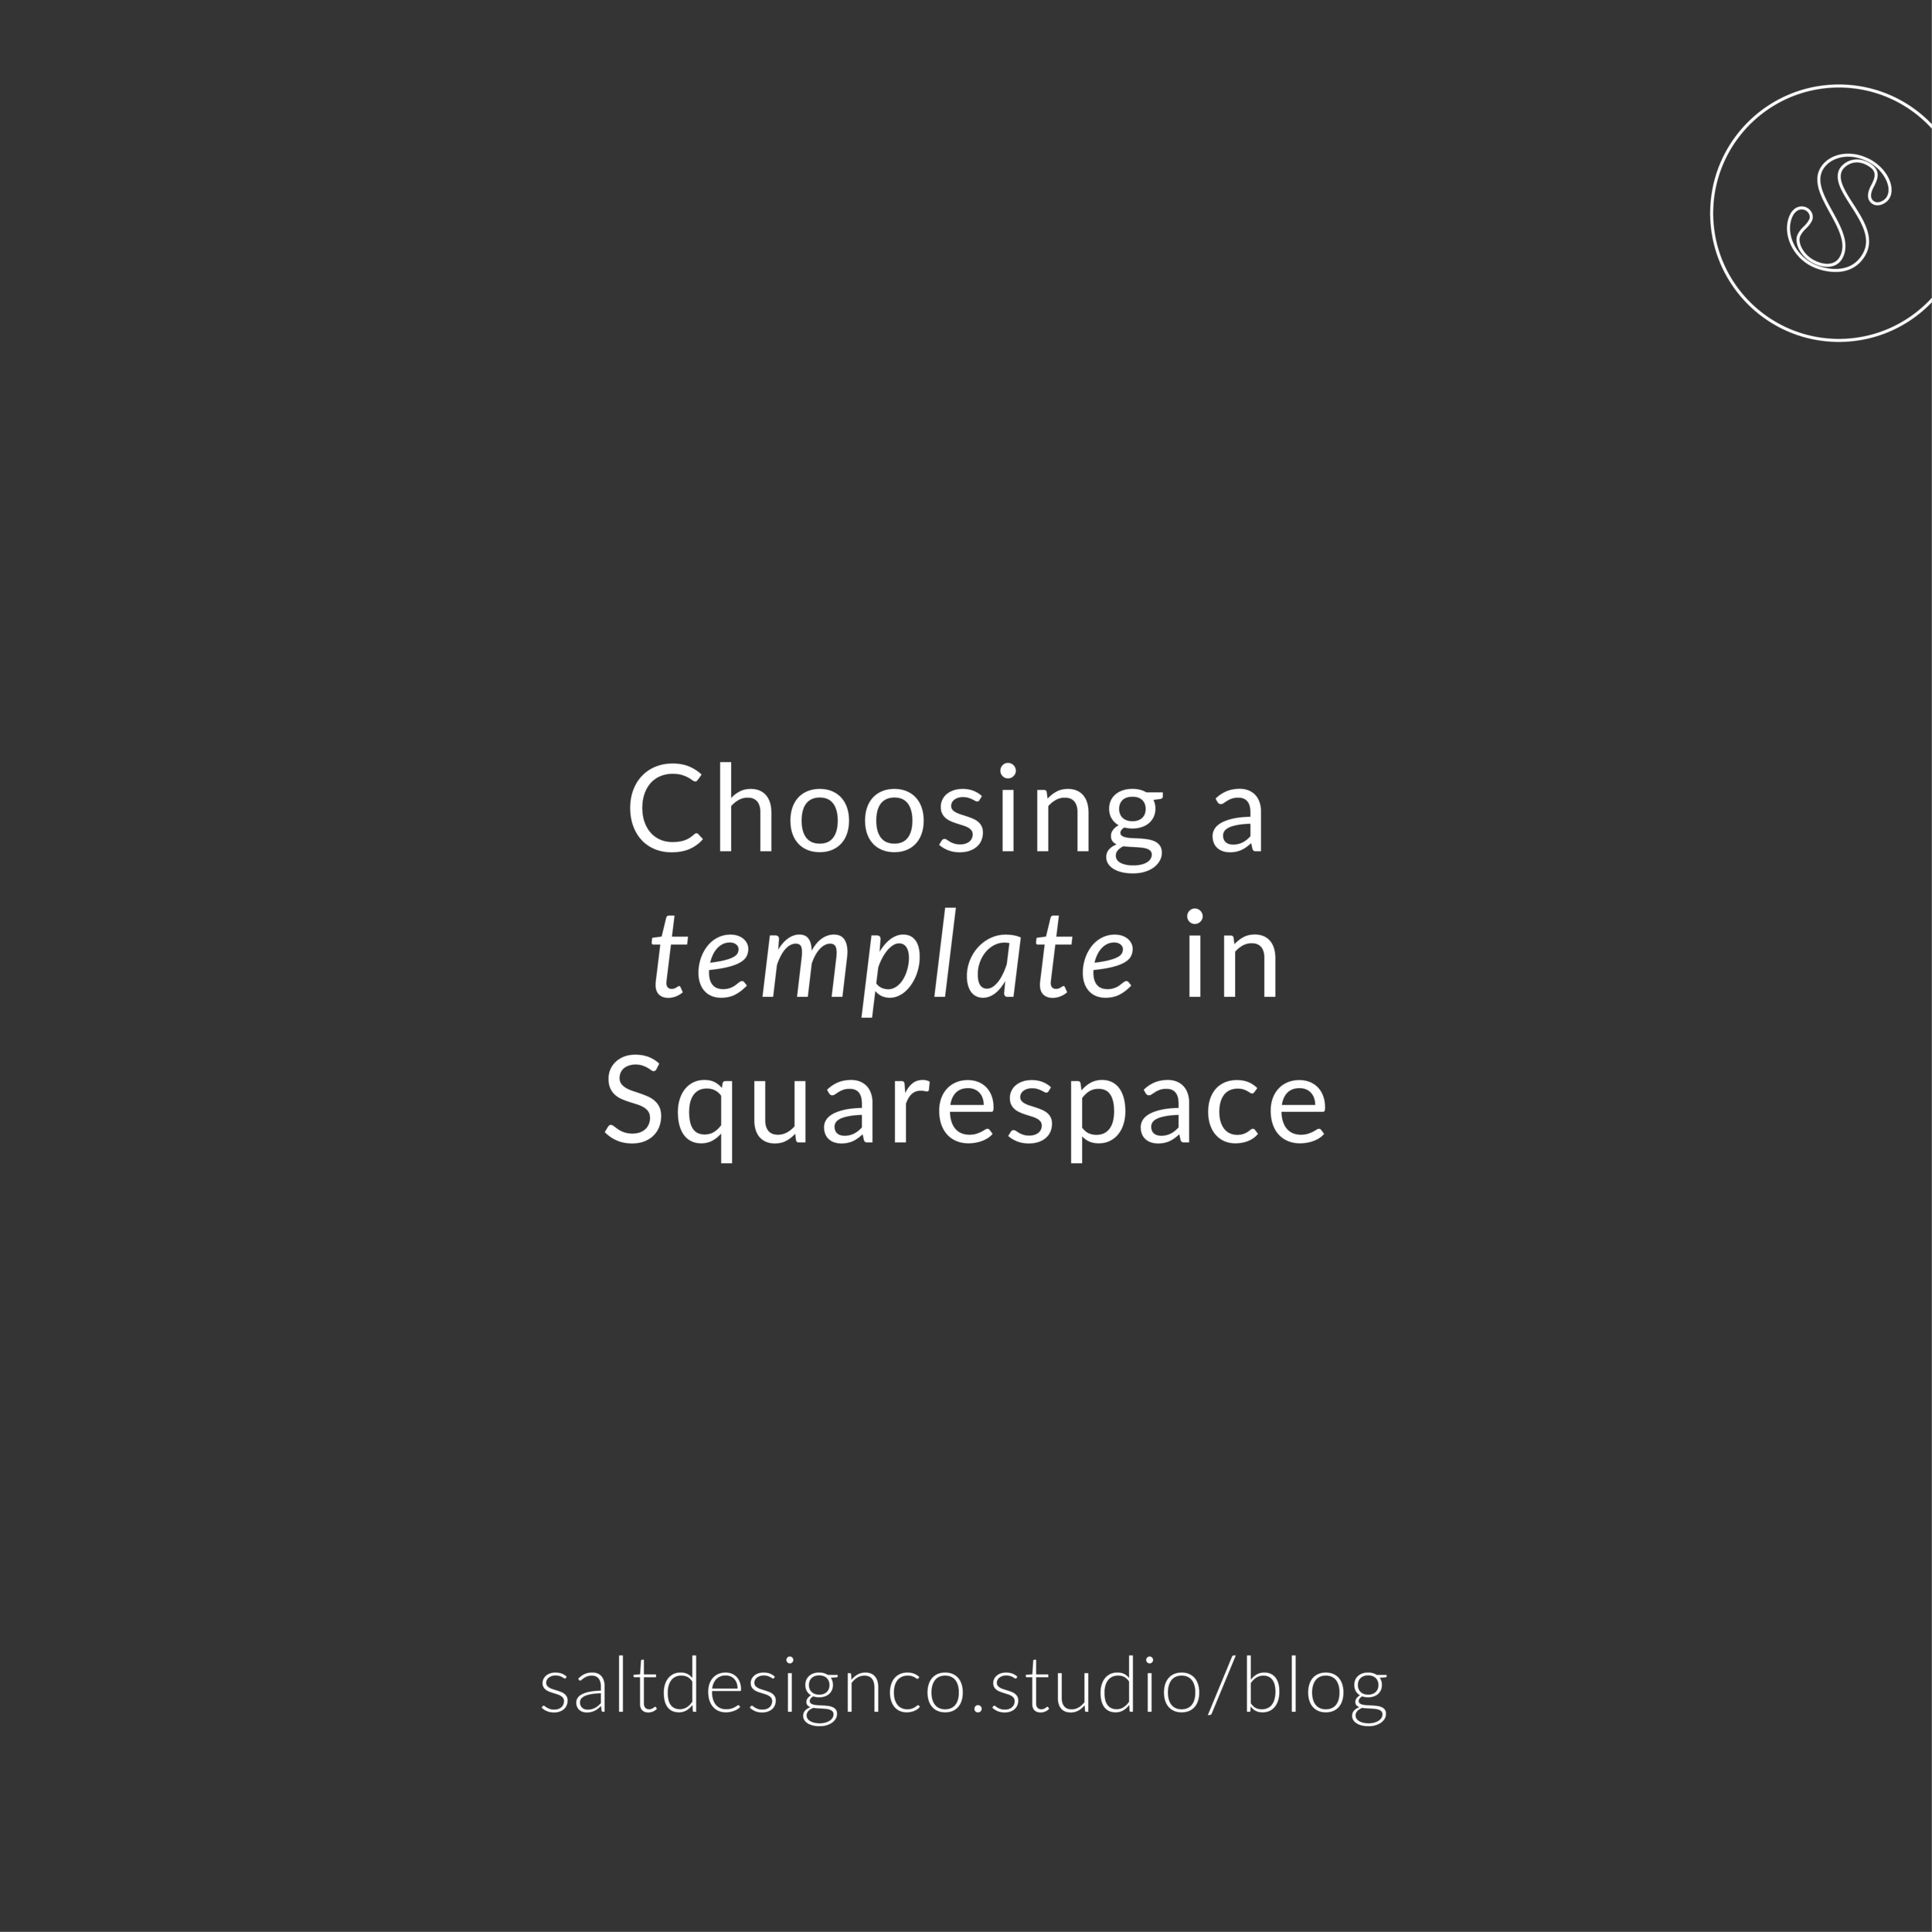 How to choose a template in Squarespace